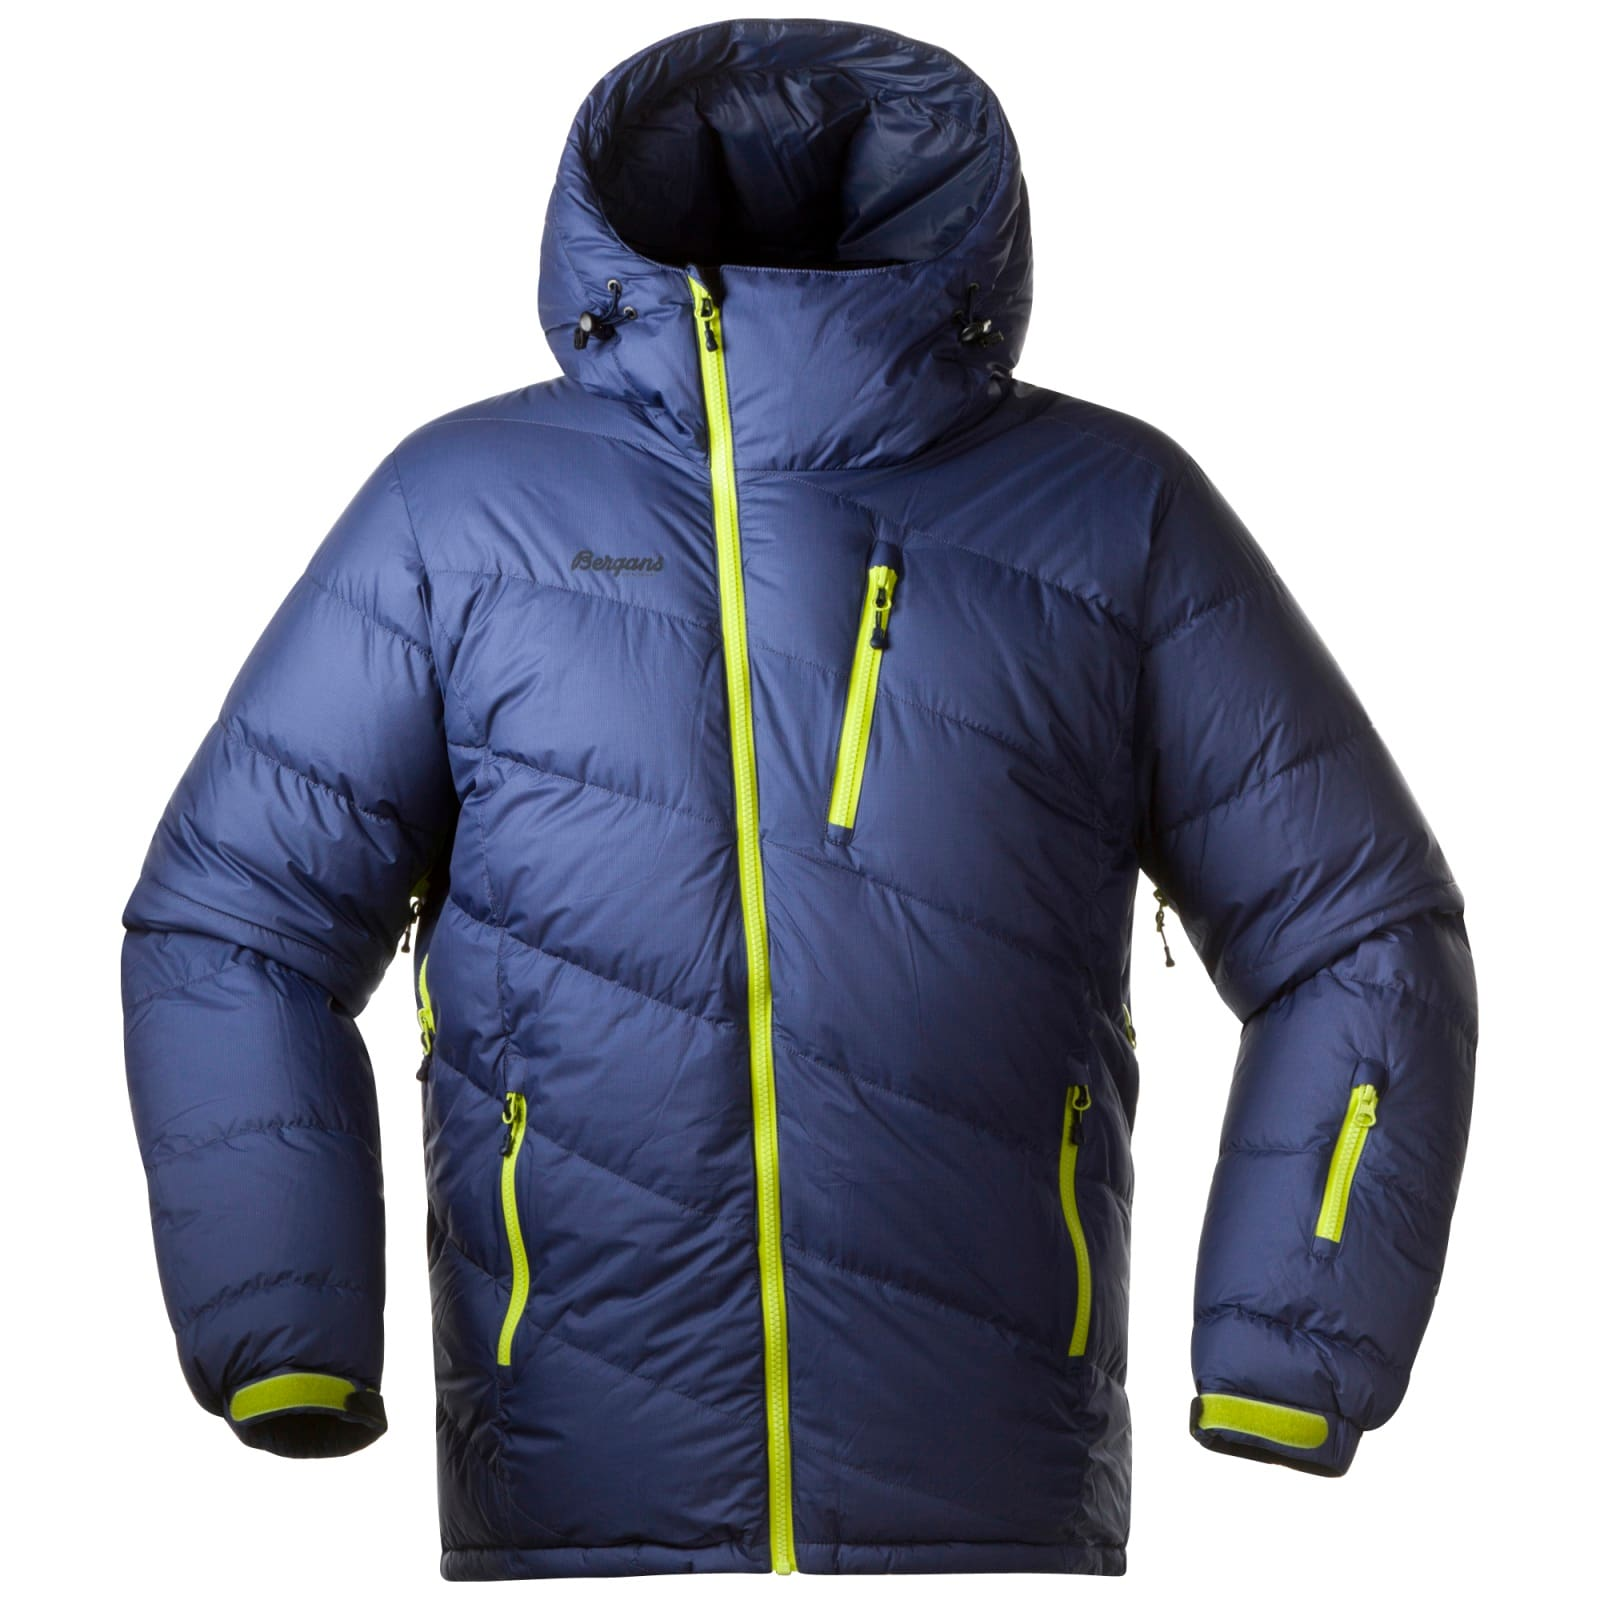 Kjøp Bergans Fonna Down Lady Jacket fra Outnorth